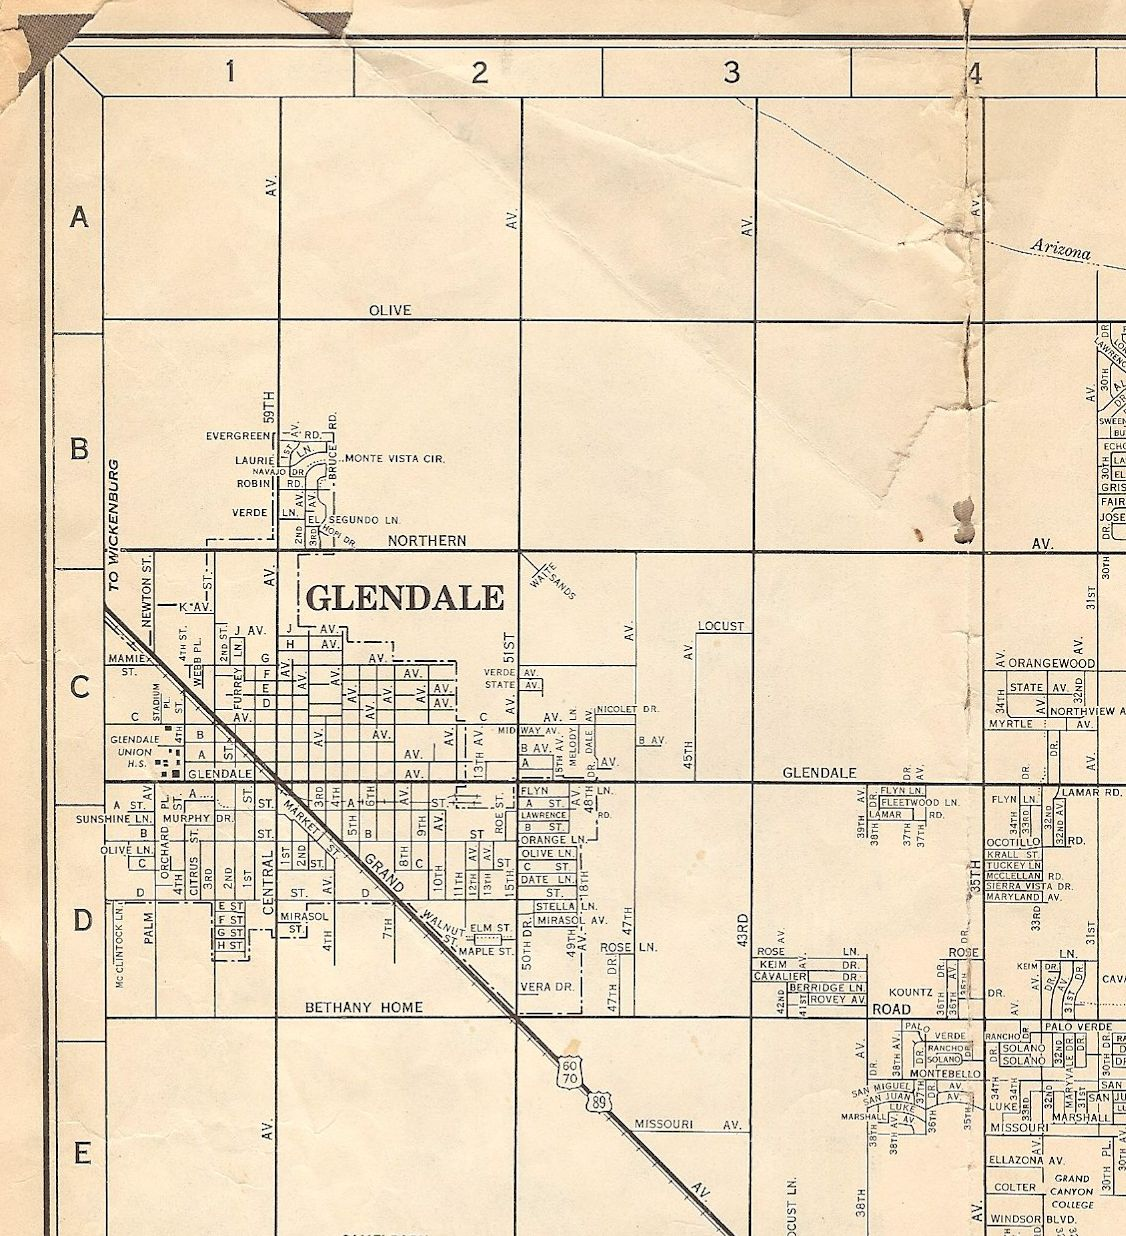 Glendale AZ 1957 Map | AZ Maps / Transit | Arizona, Phoenix, Map on klondyke arizona map, baderville arizona map, deer valley arizona map, st george arizona map, reno arizona map, havasu city arizona map, chino arizona map, big bear lake arizona map, santa fe arizona map, humboldt arizona map, eagle creek arizona map, mesquite arizona map, glendale az, tampa florida map, boise arizona map, gilbert arizona map, greasewood arizona map, hidden valley arizona map, mesa arizona map, north valley arizona map,